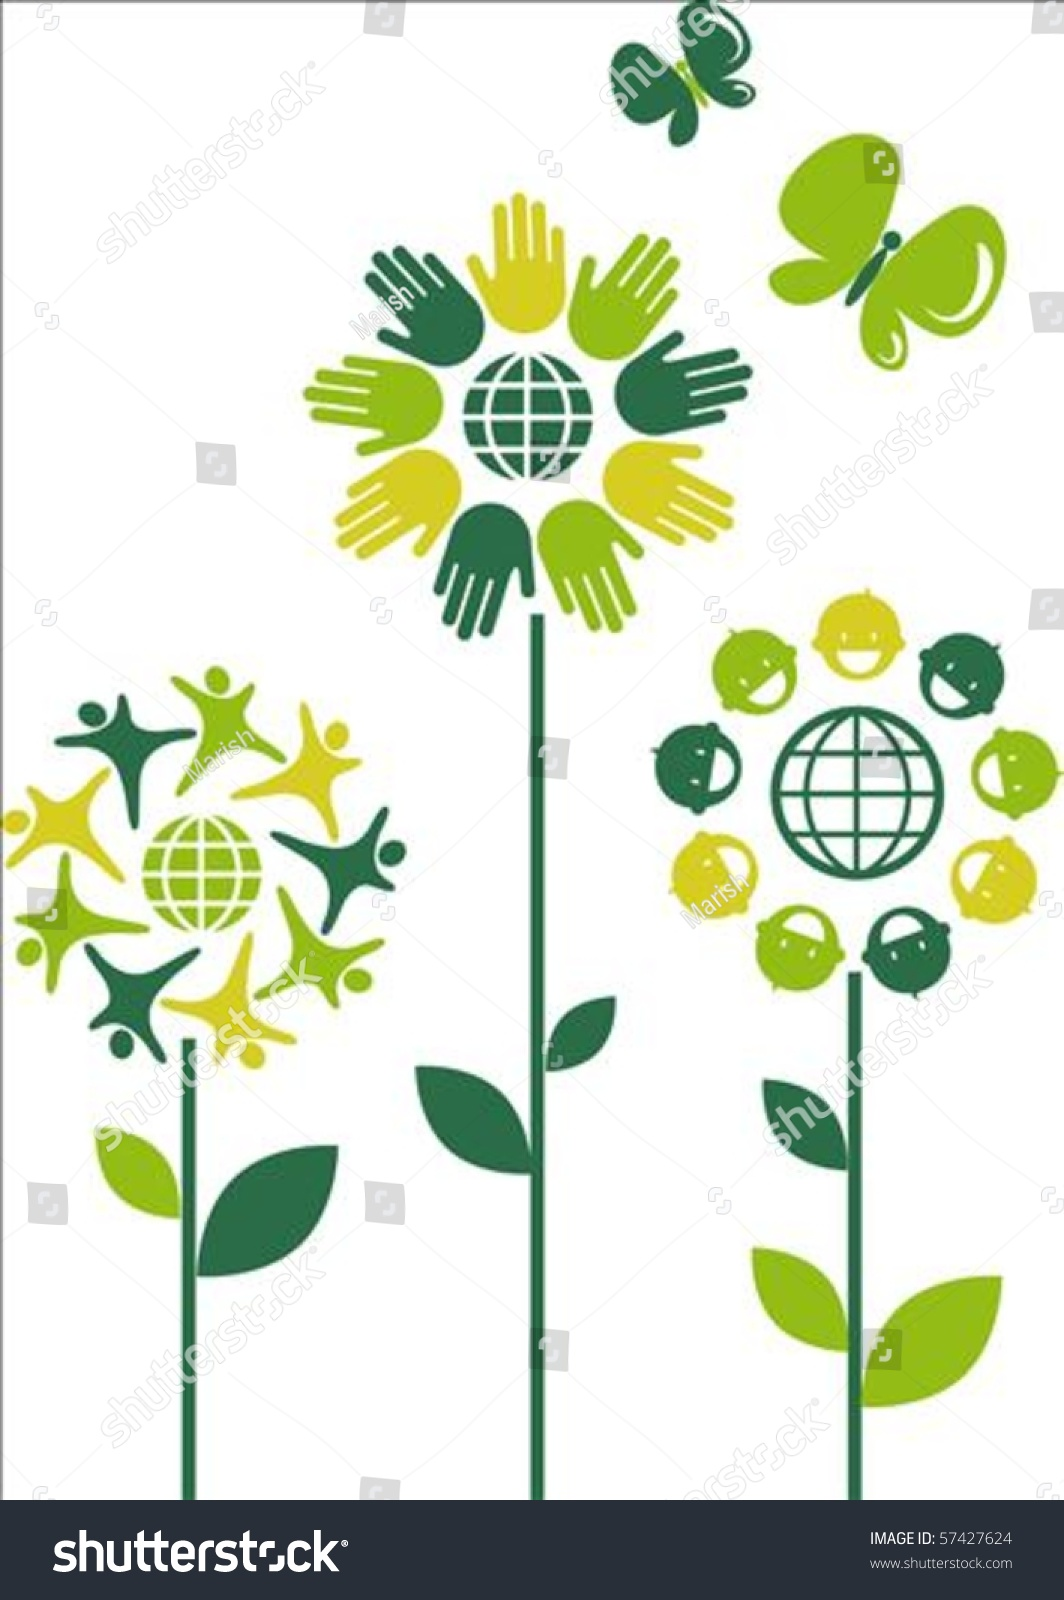 Eco Flower Symbols Human Theme Stock Vector Shutterstock